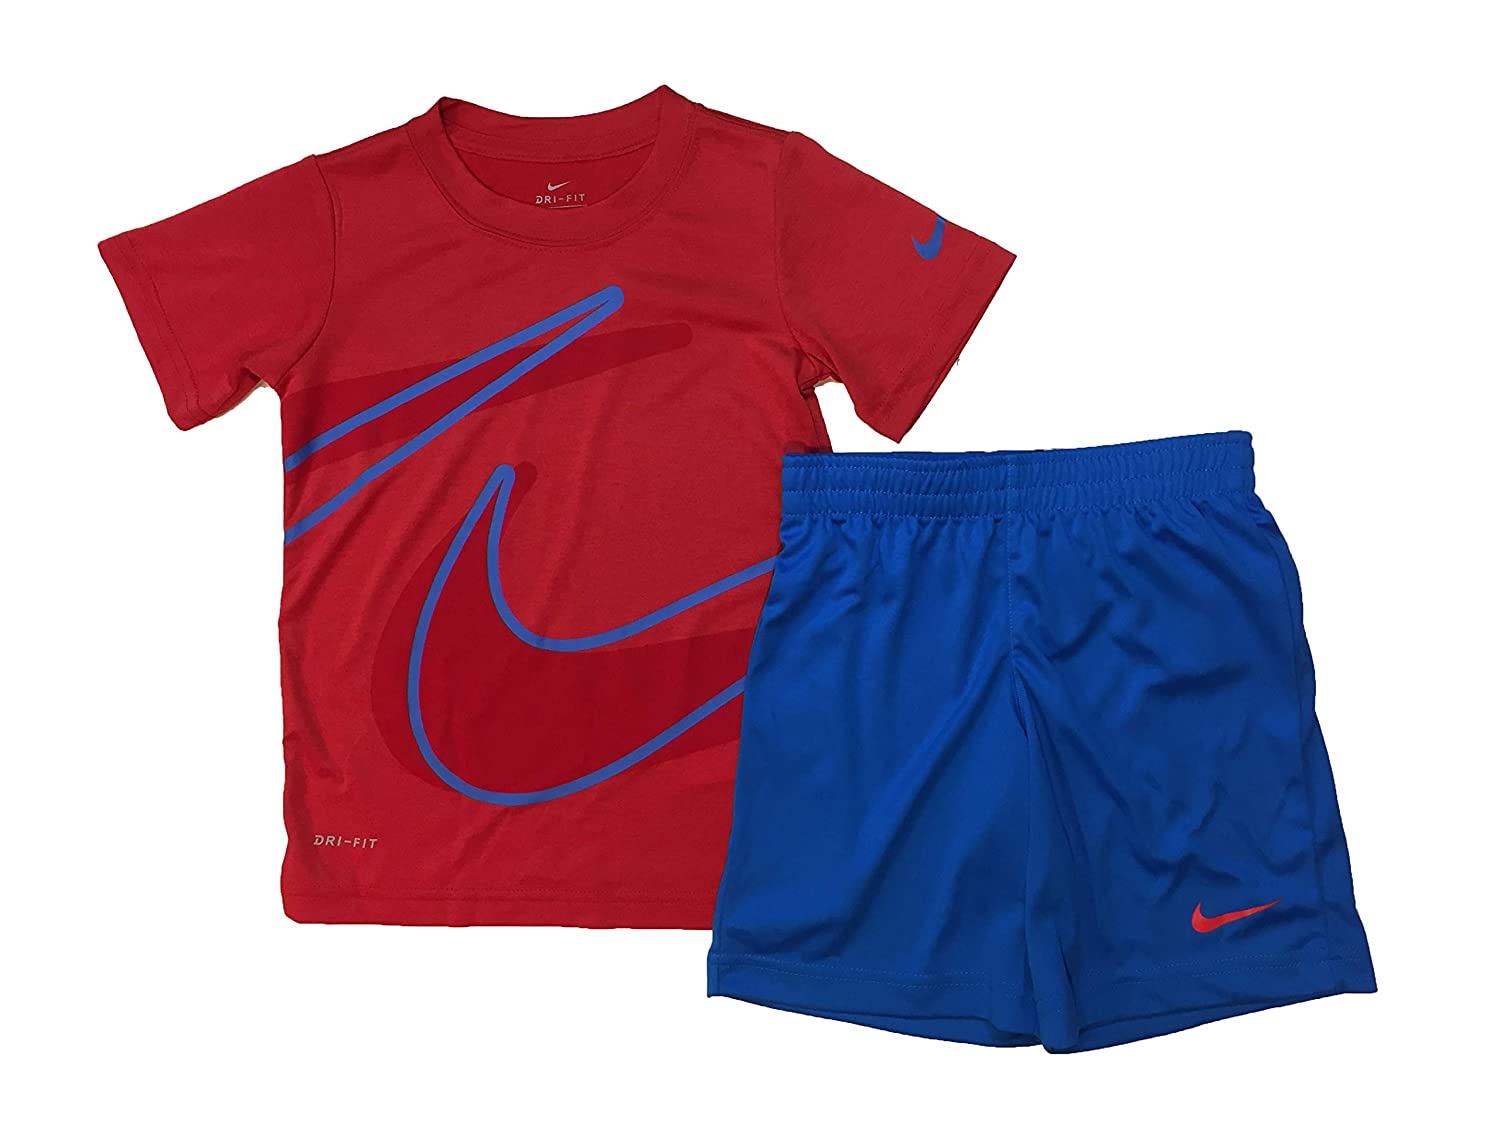 39a123367 Amazon.com: Nike Boy`s Dri-Fit T-Shirt & Shorts 2 Piece Set: Sports &  Outdoors